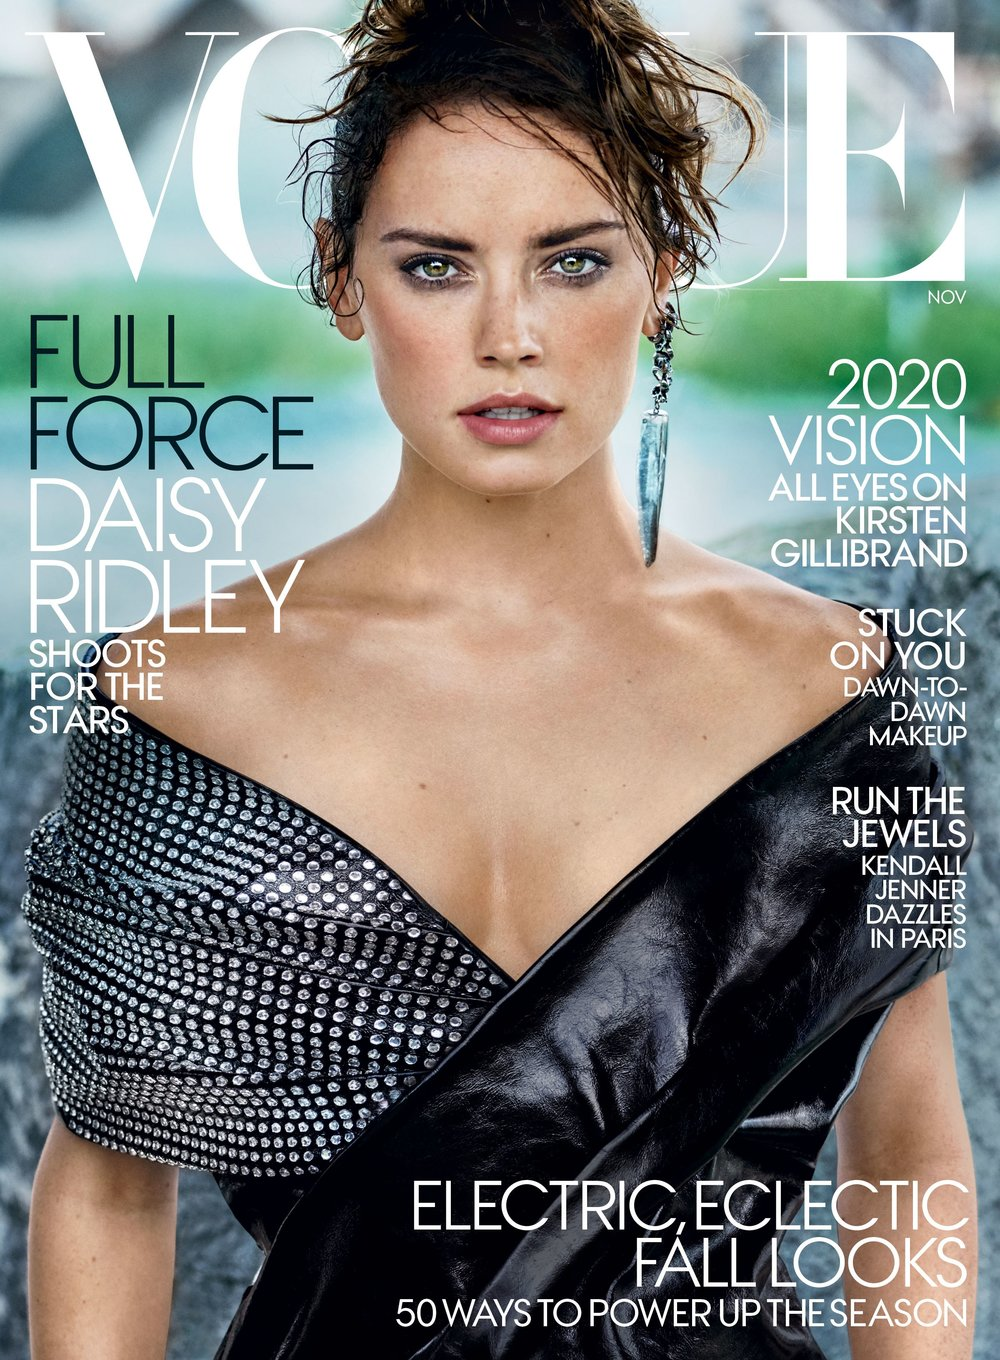 05-daisy-ridley-vogue-cover-november-2017.jpg